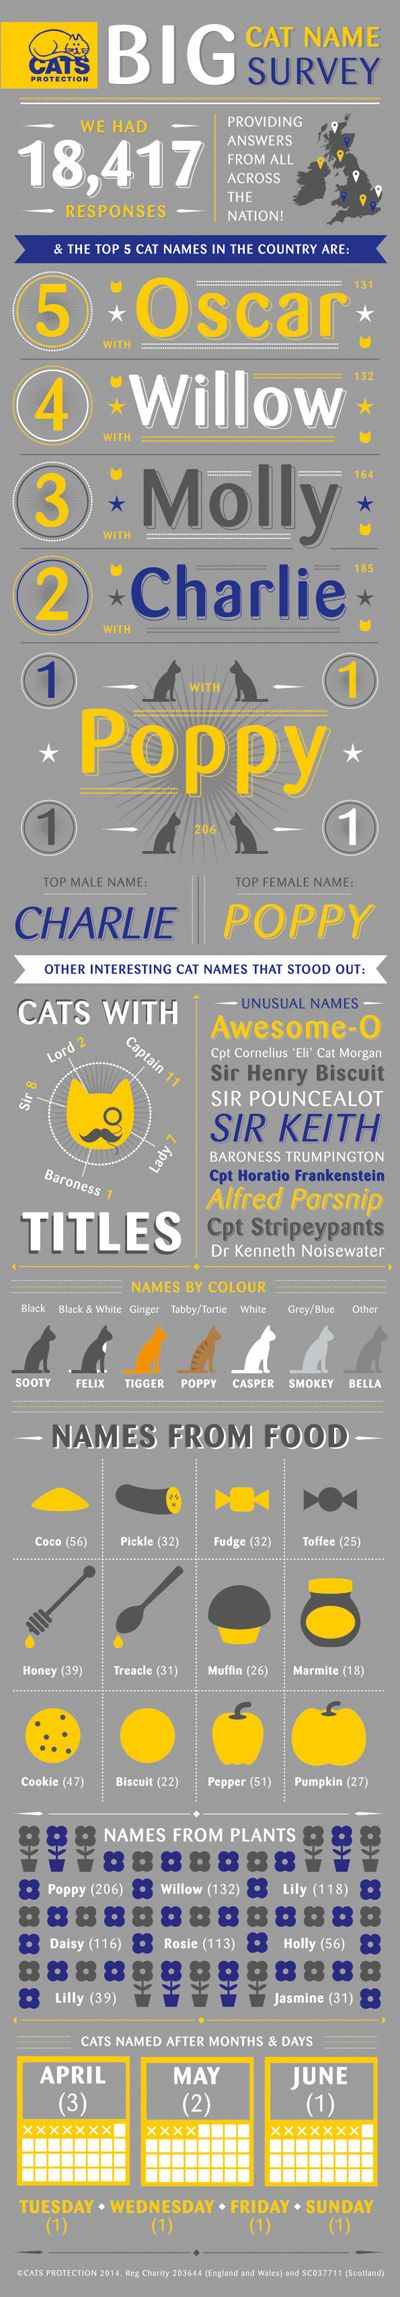 Find out the most popular cat names around the UK - including some of the more funny and unusual names!